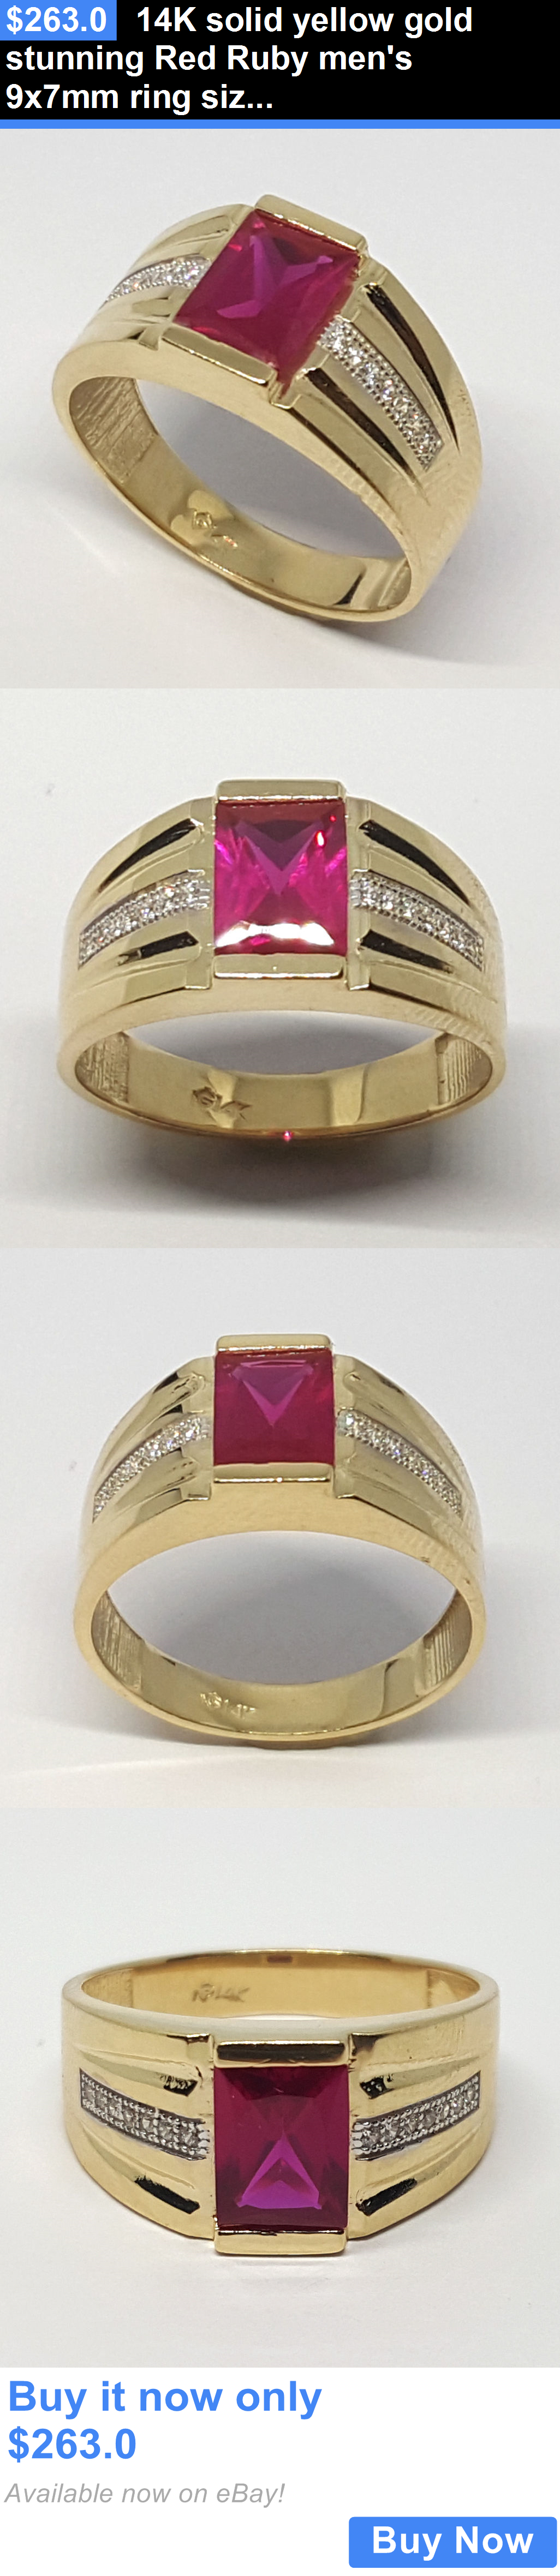 Men Jewelry 14K Solid Yellow Gold Stunning Red Ruby Mens 9X7mm